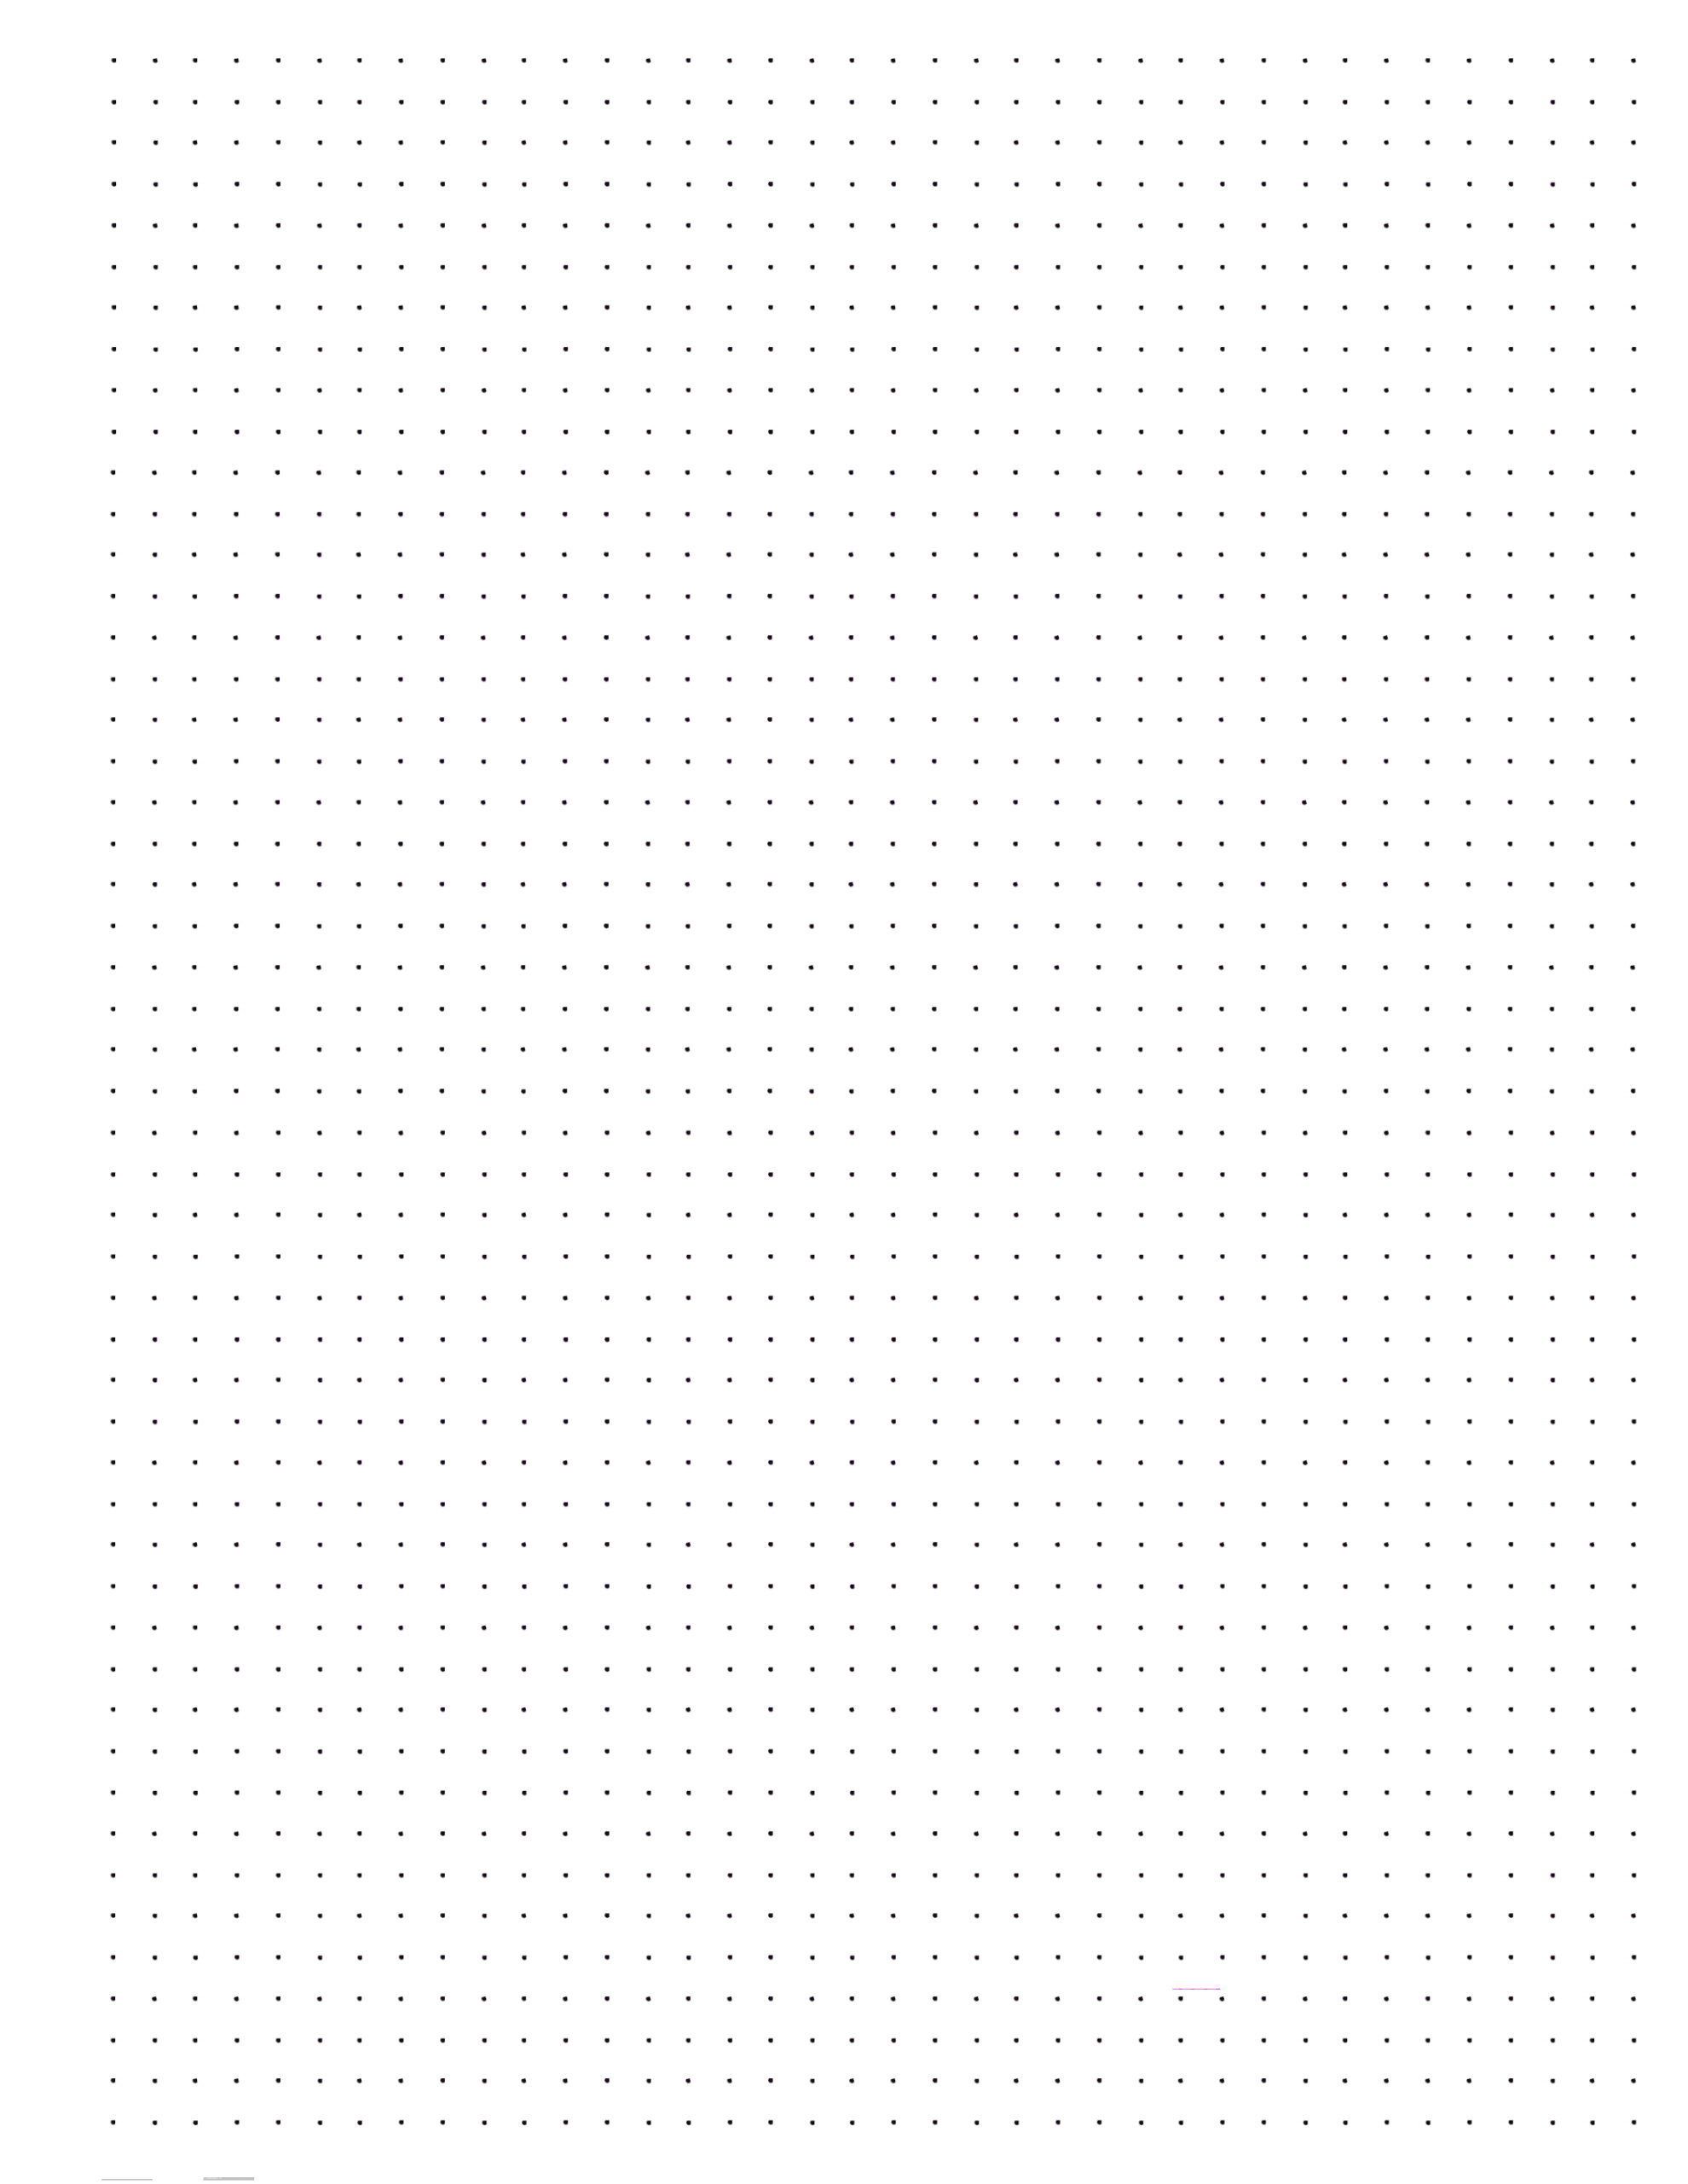 image relating to Free Printable Dot Grid Paper named Satisfied Planner Dot Grid Paper Totally free Printable - Paper Path Layout